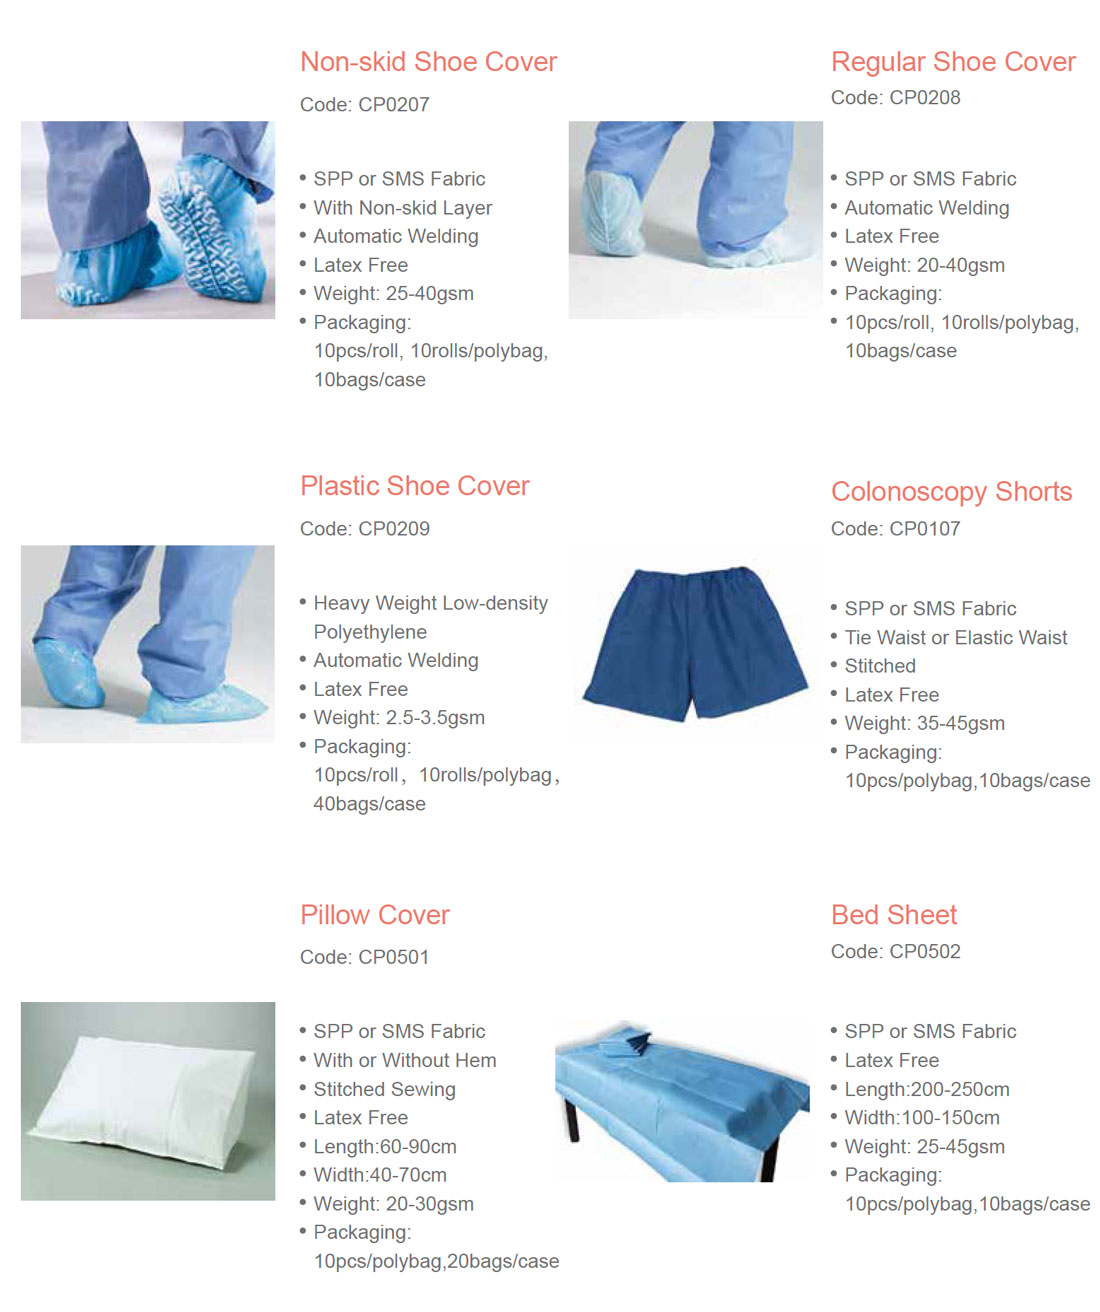 Footwears & Others | Protective Apparels - Medical Group Care